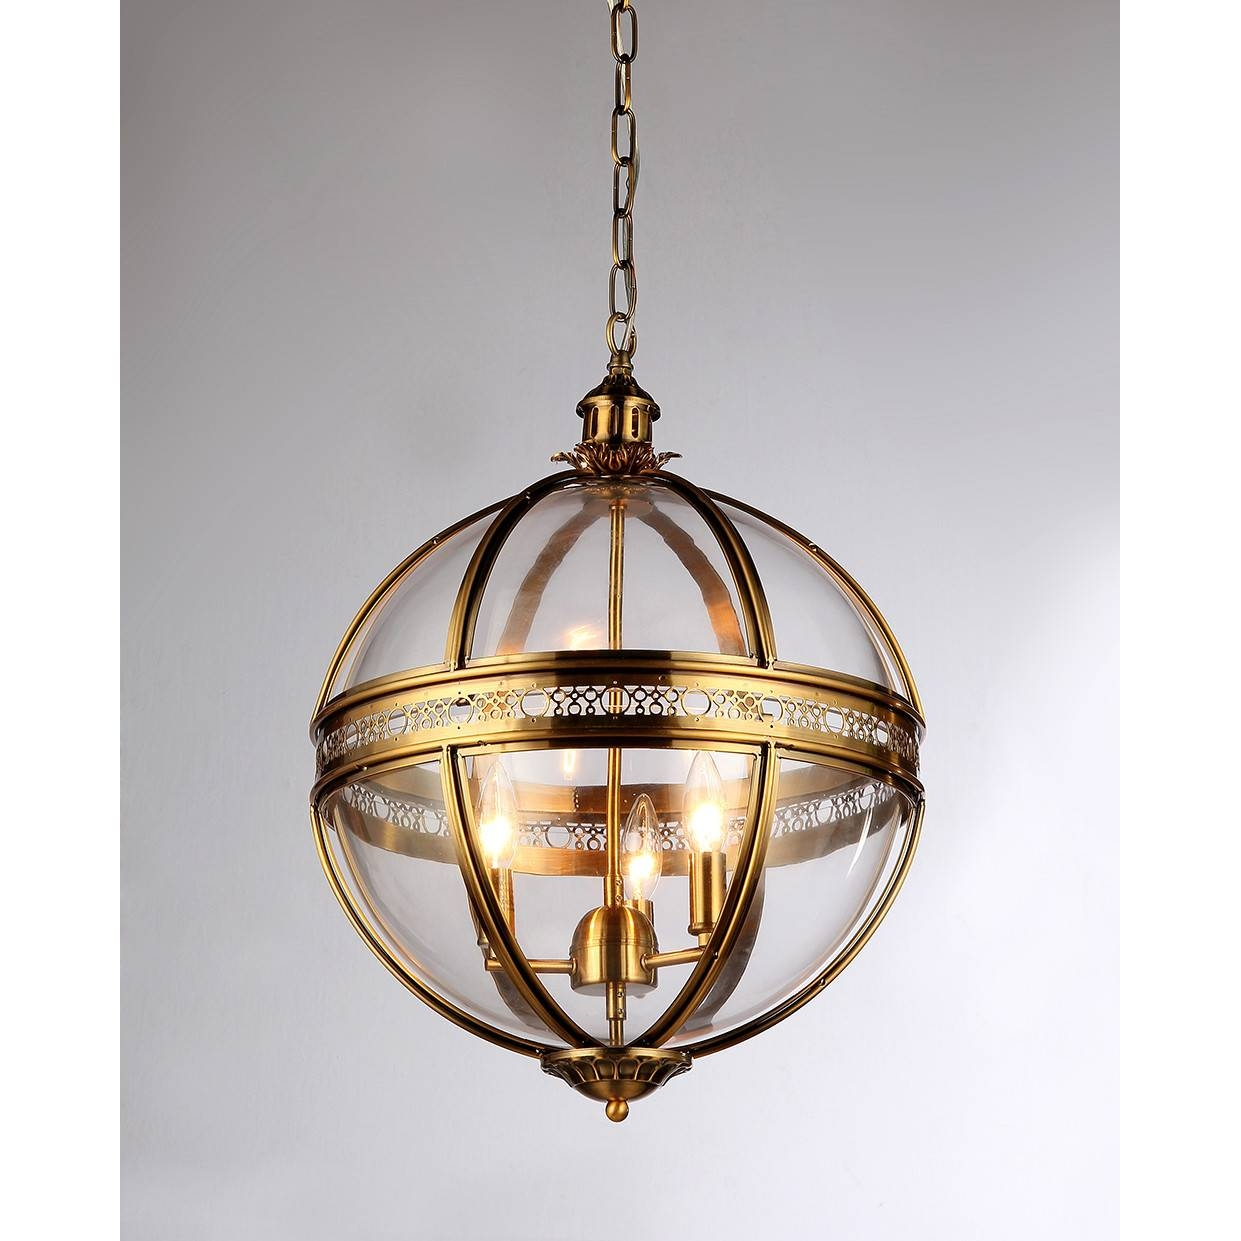 Look For Less: Restoration Hardware Victorian Hotel Pendant | The With Regard To Victorian Hotel Pendants (Photo 1 of 15)